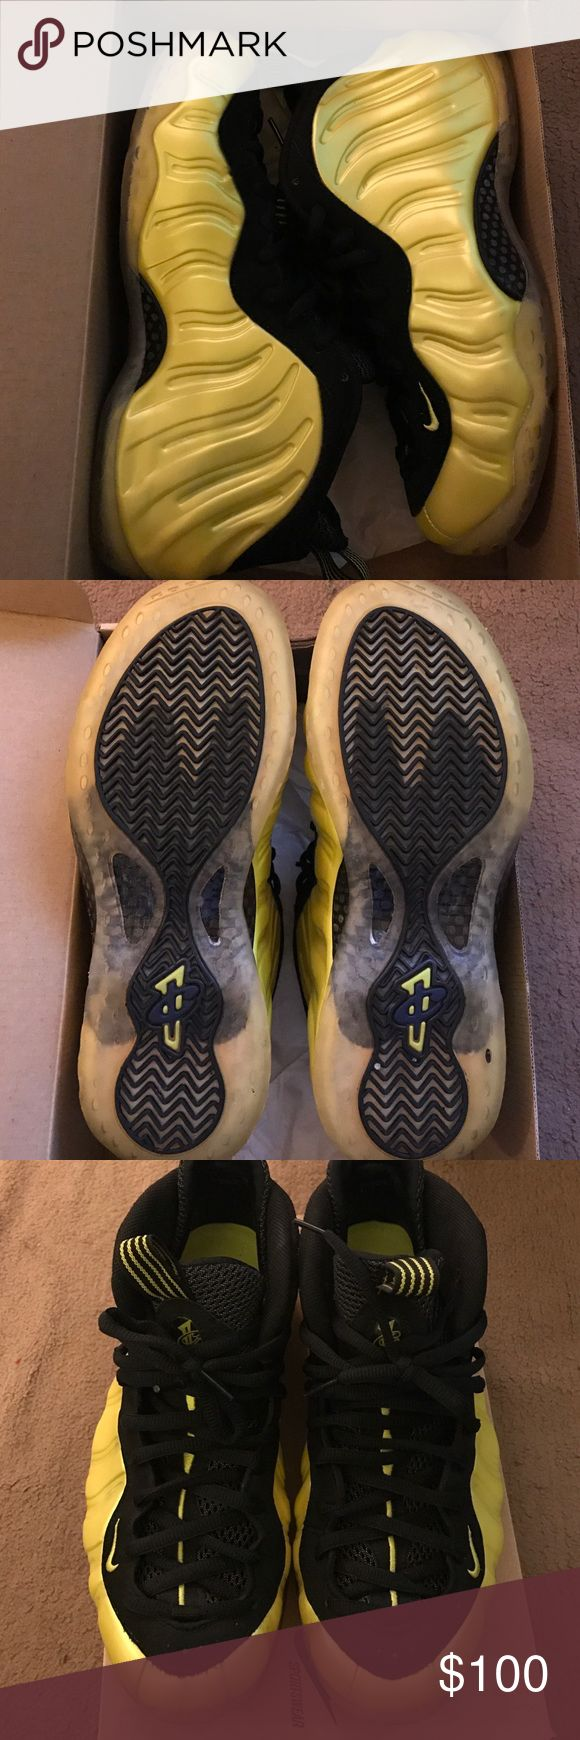 Electrolime yellow/black foamposite size 10 Very good condition with original box. Nike Shoes Sneakers